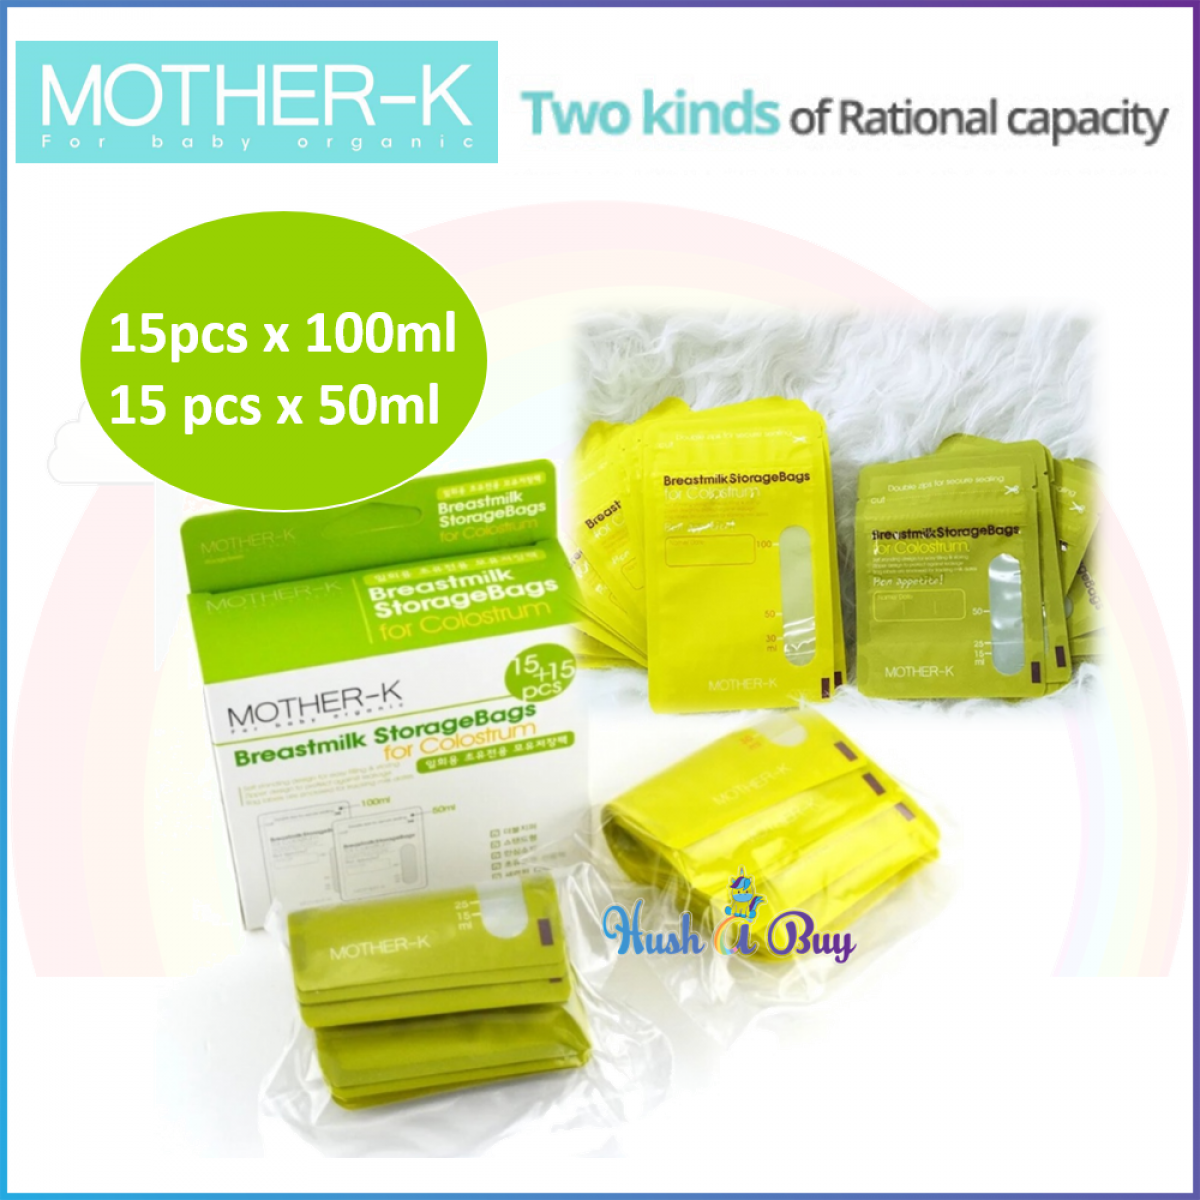 MOTHER K Breastmilk Storage Bag For Colostrum 50ml+100ml (30pcs)